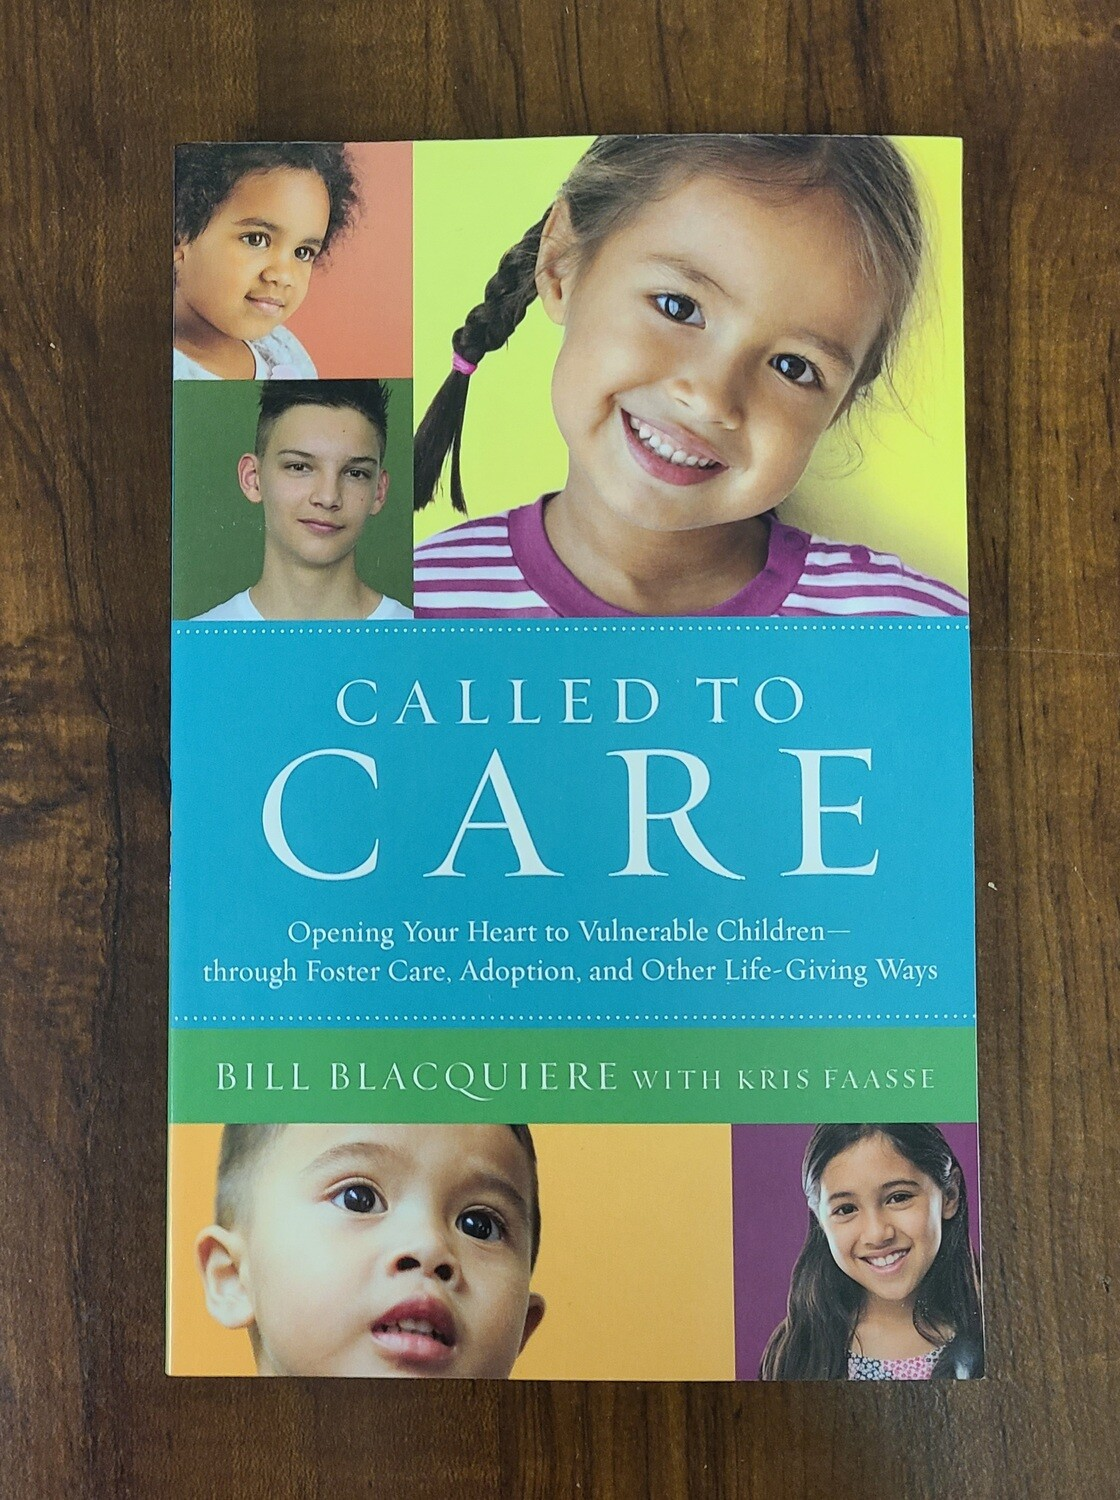 Called to Care: Opening Your Heart to Vulnerable Children through Foster Care, Adoption, and Other Life-Giving Ways by Bill Blacquiere with Kris Faasse